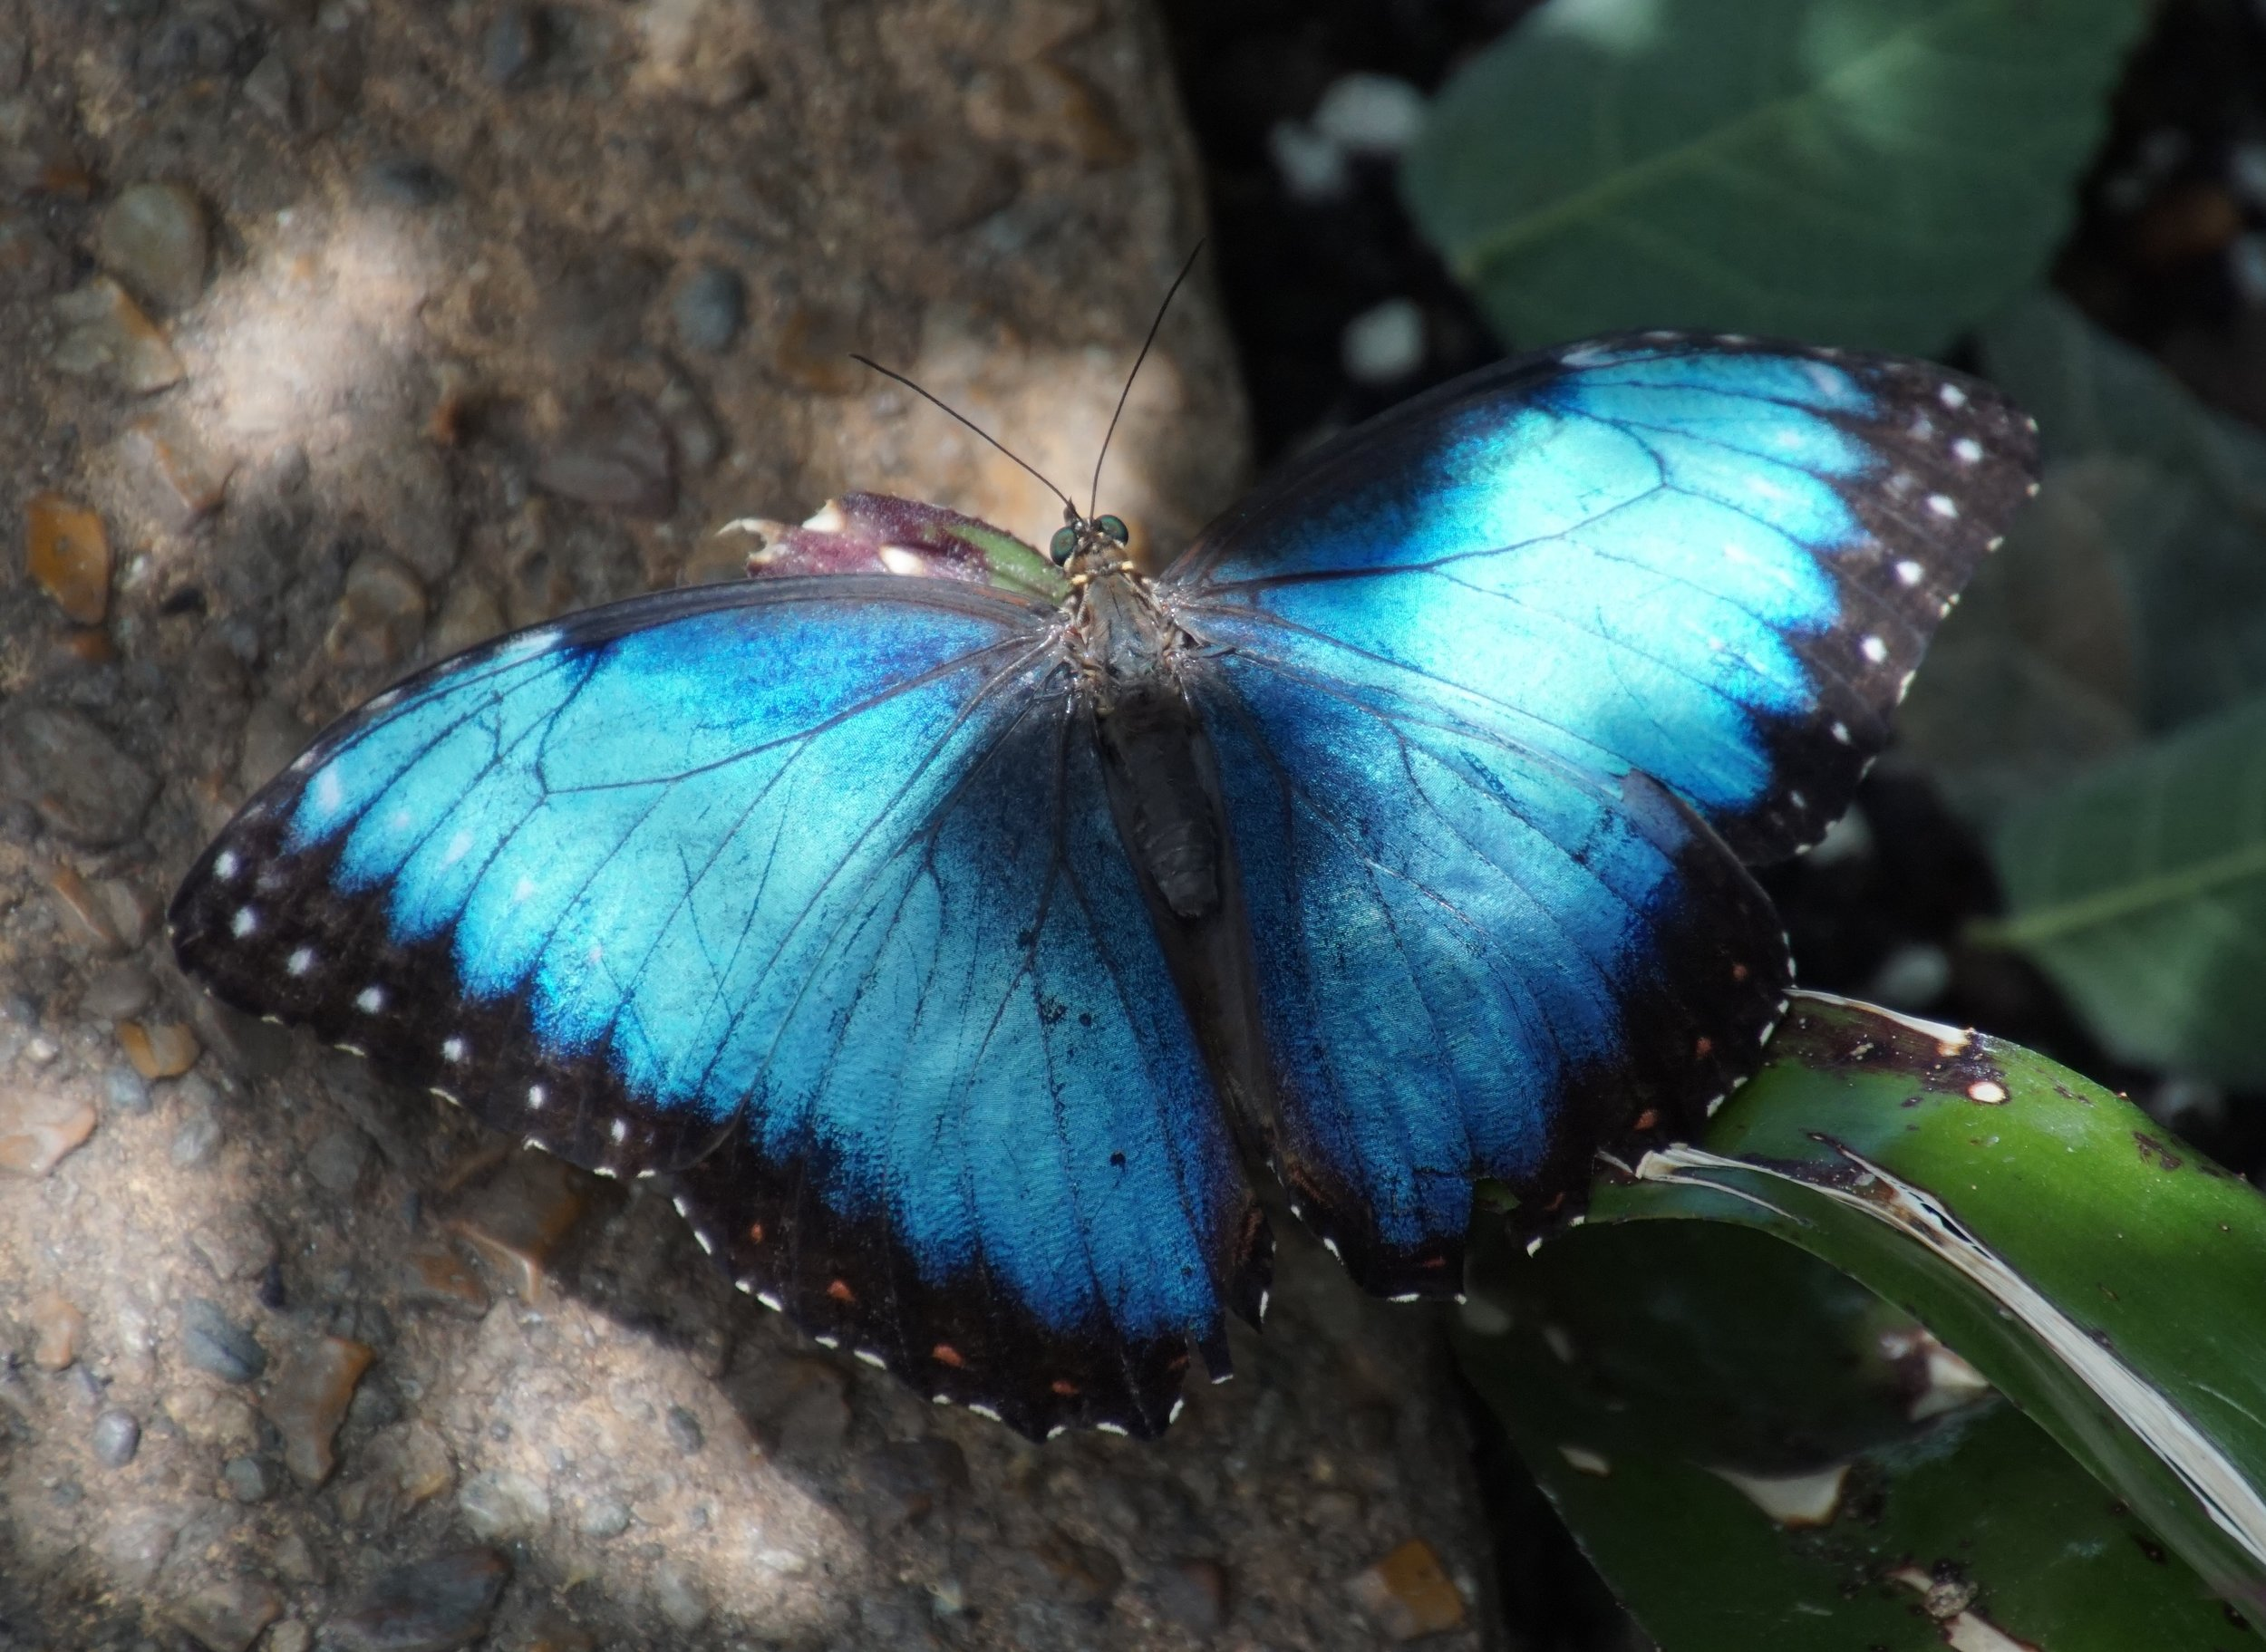 I recall with great joy seeing blue morpho butterflies in the dappled sun of Costa Rica. Morpho refers to Morpheus the god of dreams in Greek mythology.